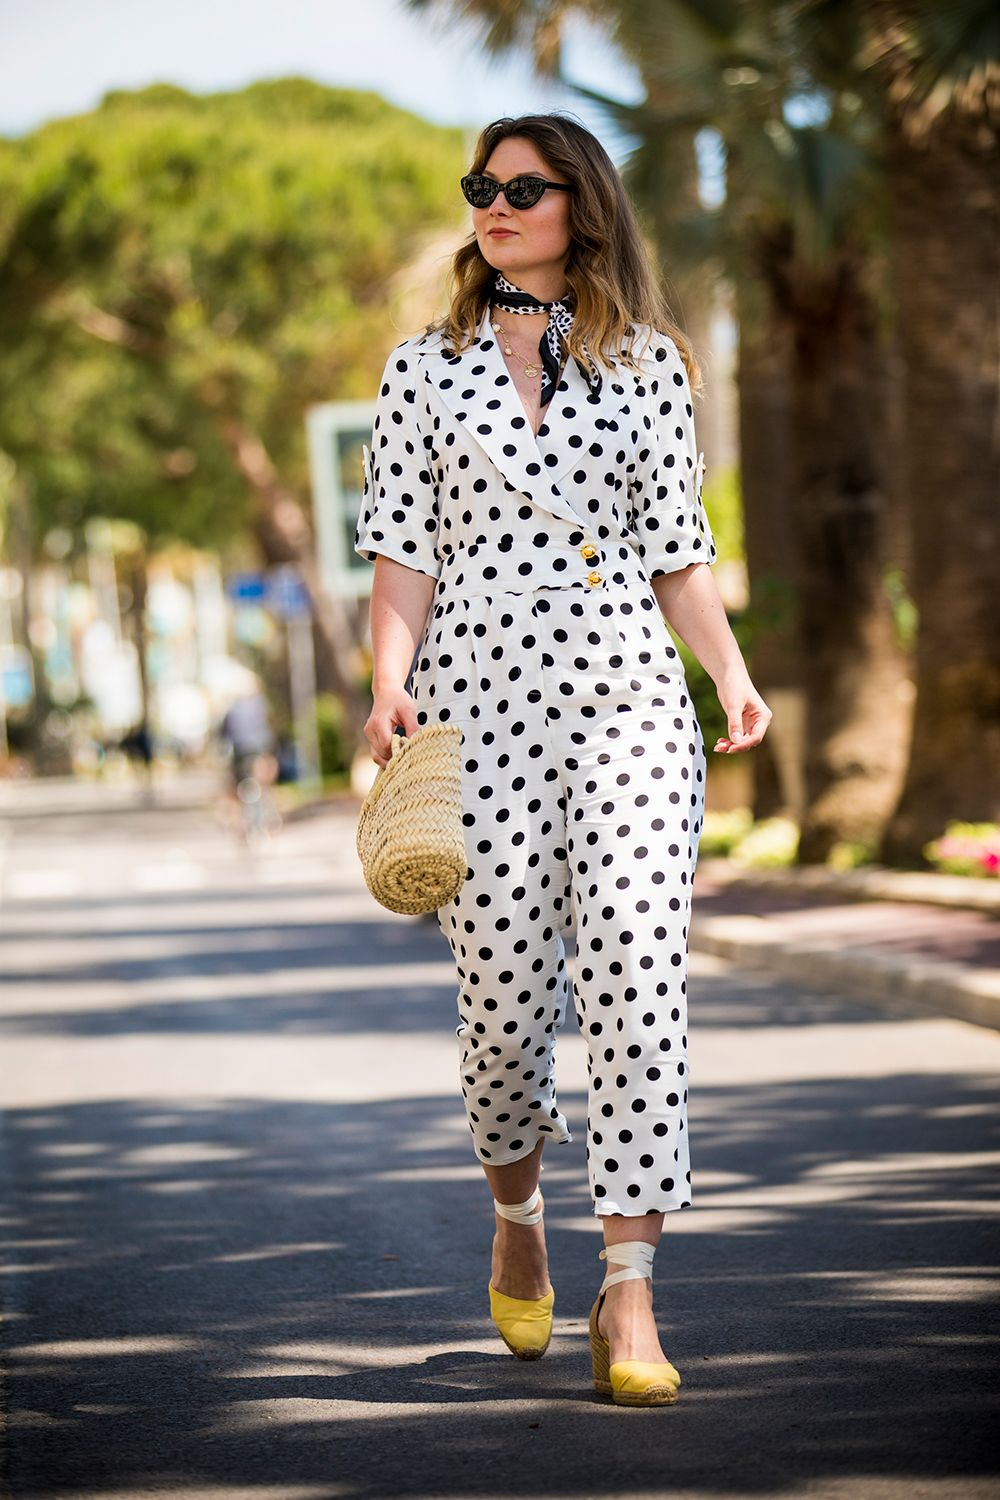 Street Style Guide to Summer Work Attire foto